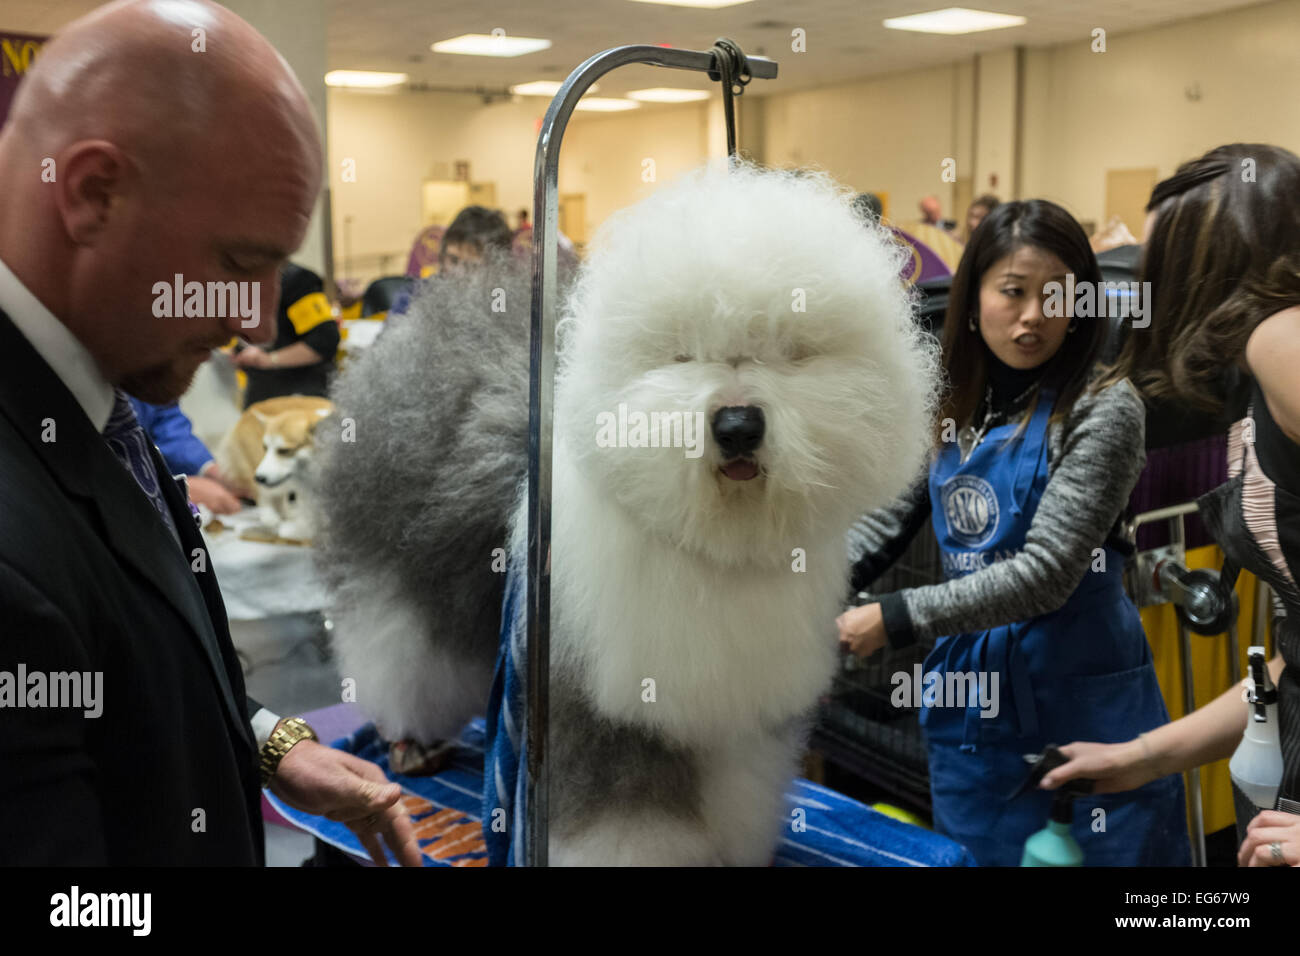 New York, NY, USA. 16th Feb, 2015. Old English sheep dog Swagger getting finishing touches by groomers prior to his entrance in the herding group competition at the Westminster Kennel Club Dog Show. Swagger, registered as Bugaboo's Picture Perfect, took first place in the group. Credit:  Ed Lefkowicz/Alamy Live News Stock Photo